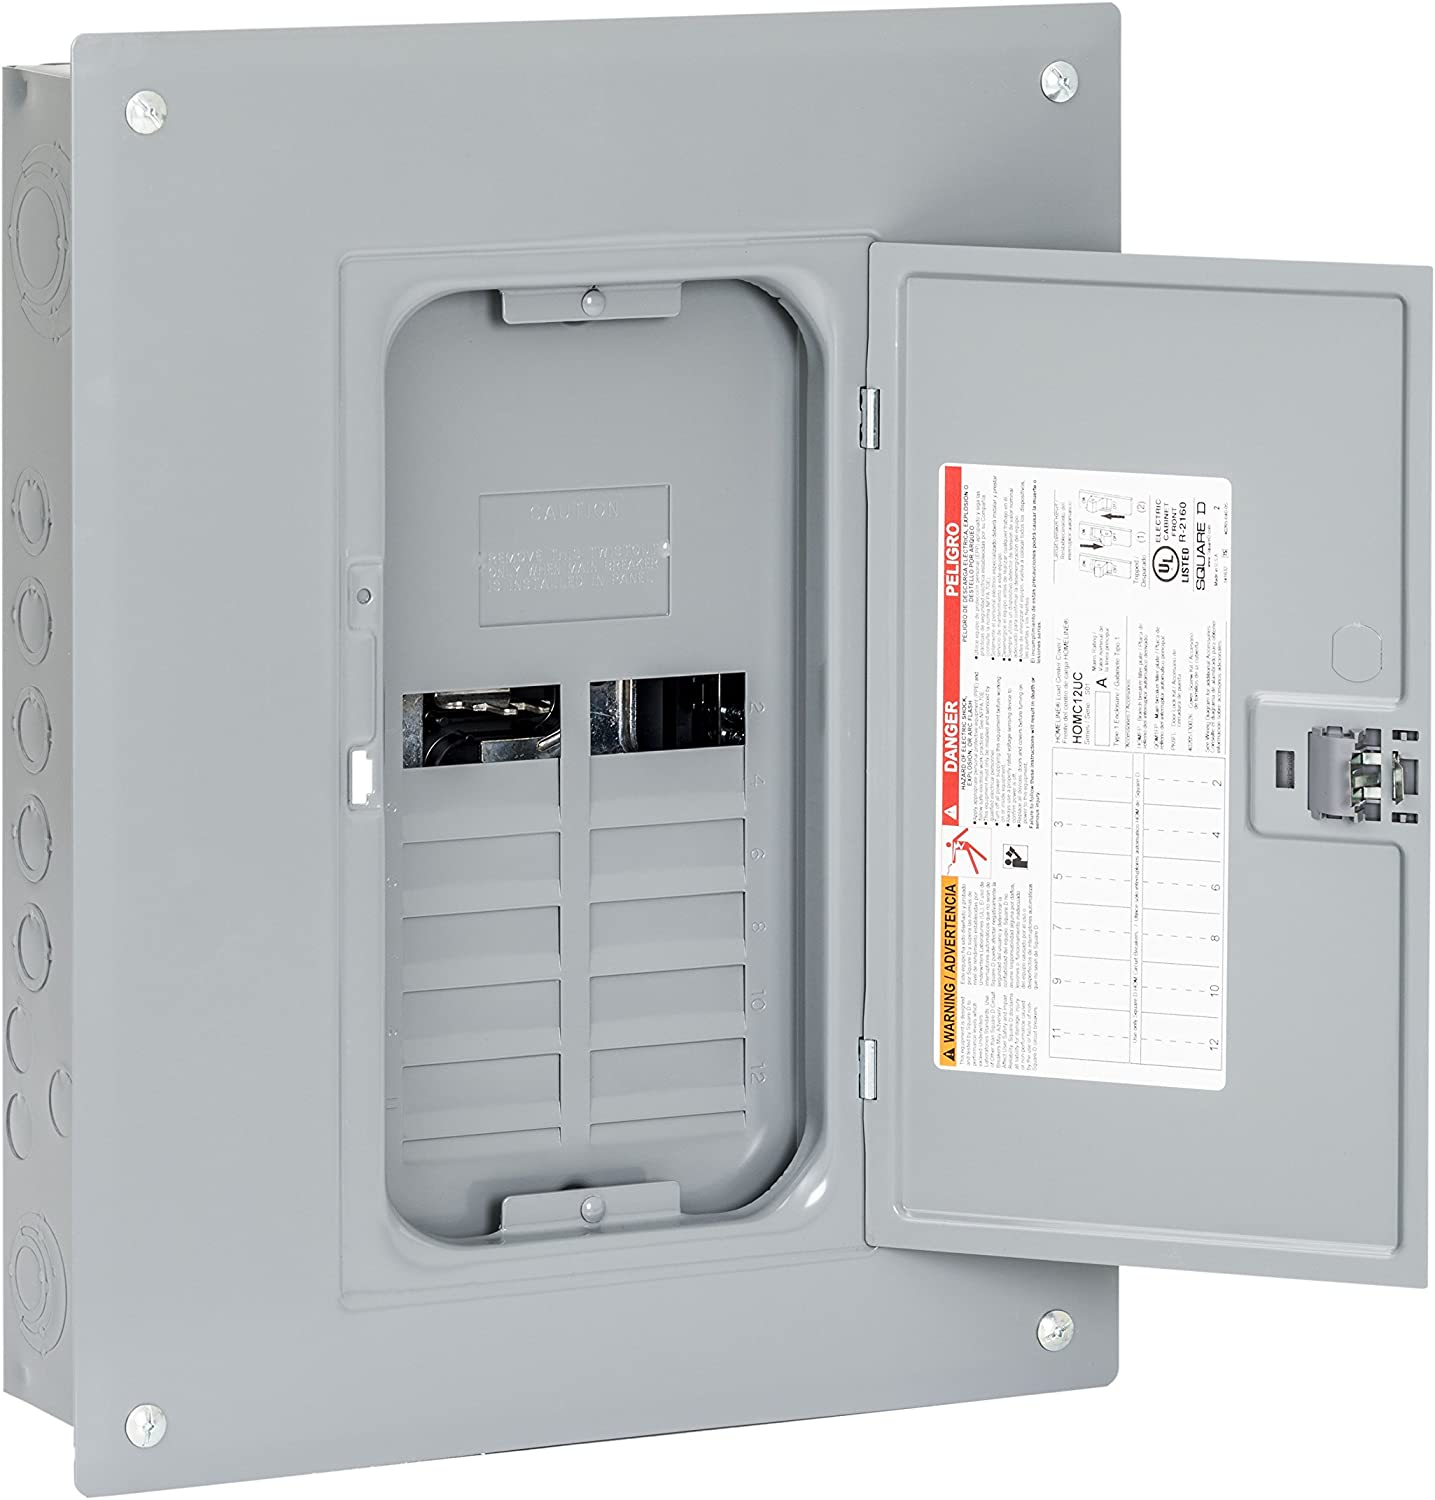 Square D by Schneider Electric HOM1224L125PC Homeline 125 Amp 12-Space 24-Circuit Indoor Main Lugs Load Center with Cover (Plug-on Neutral Ready), Gray - -